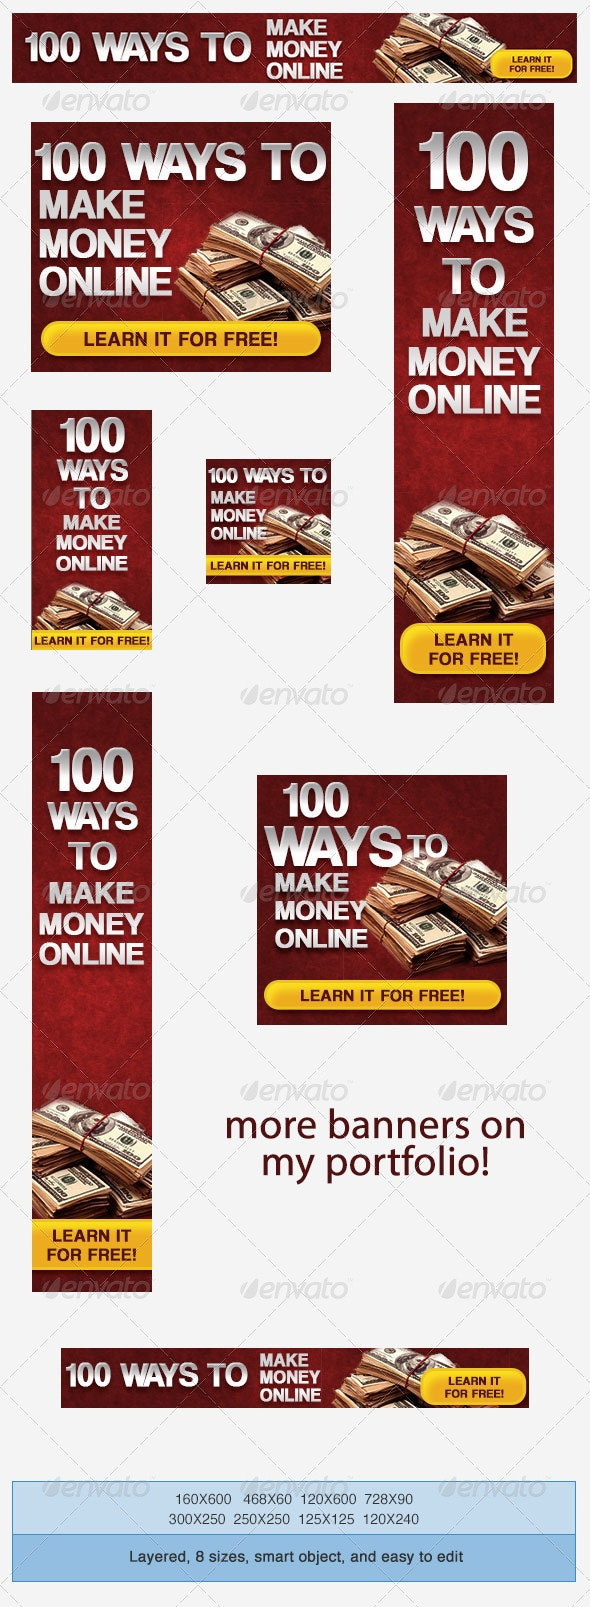 Make Money Online Banner Ad Template - Banners & Ads Web Elements